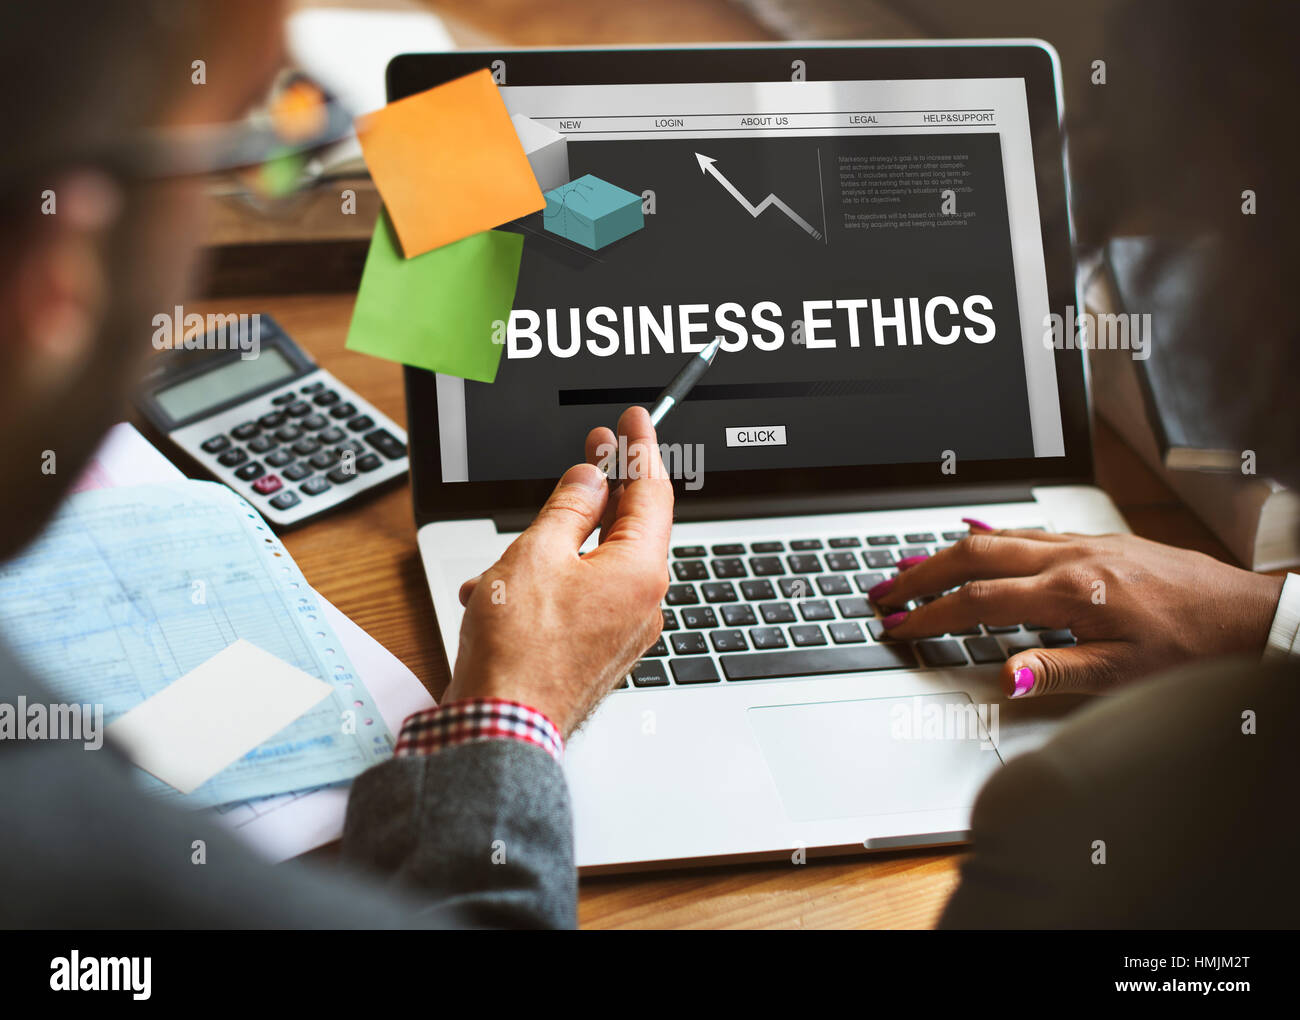 Business Ethics Strategy Development Concept - Stock Image